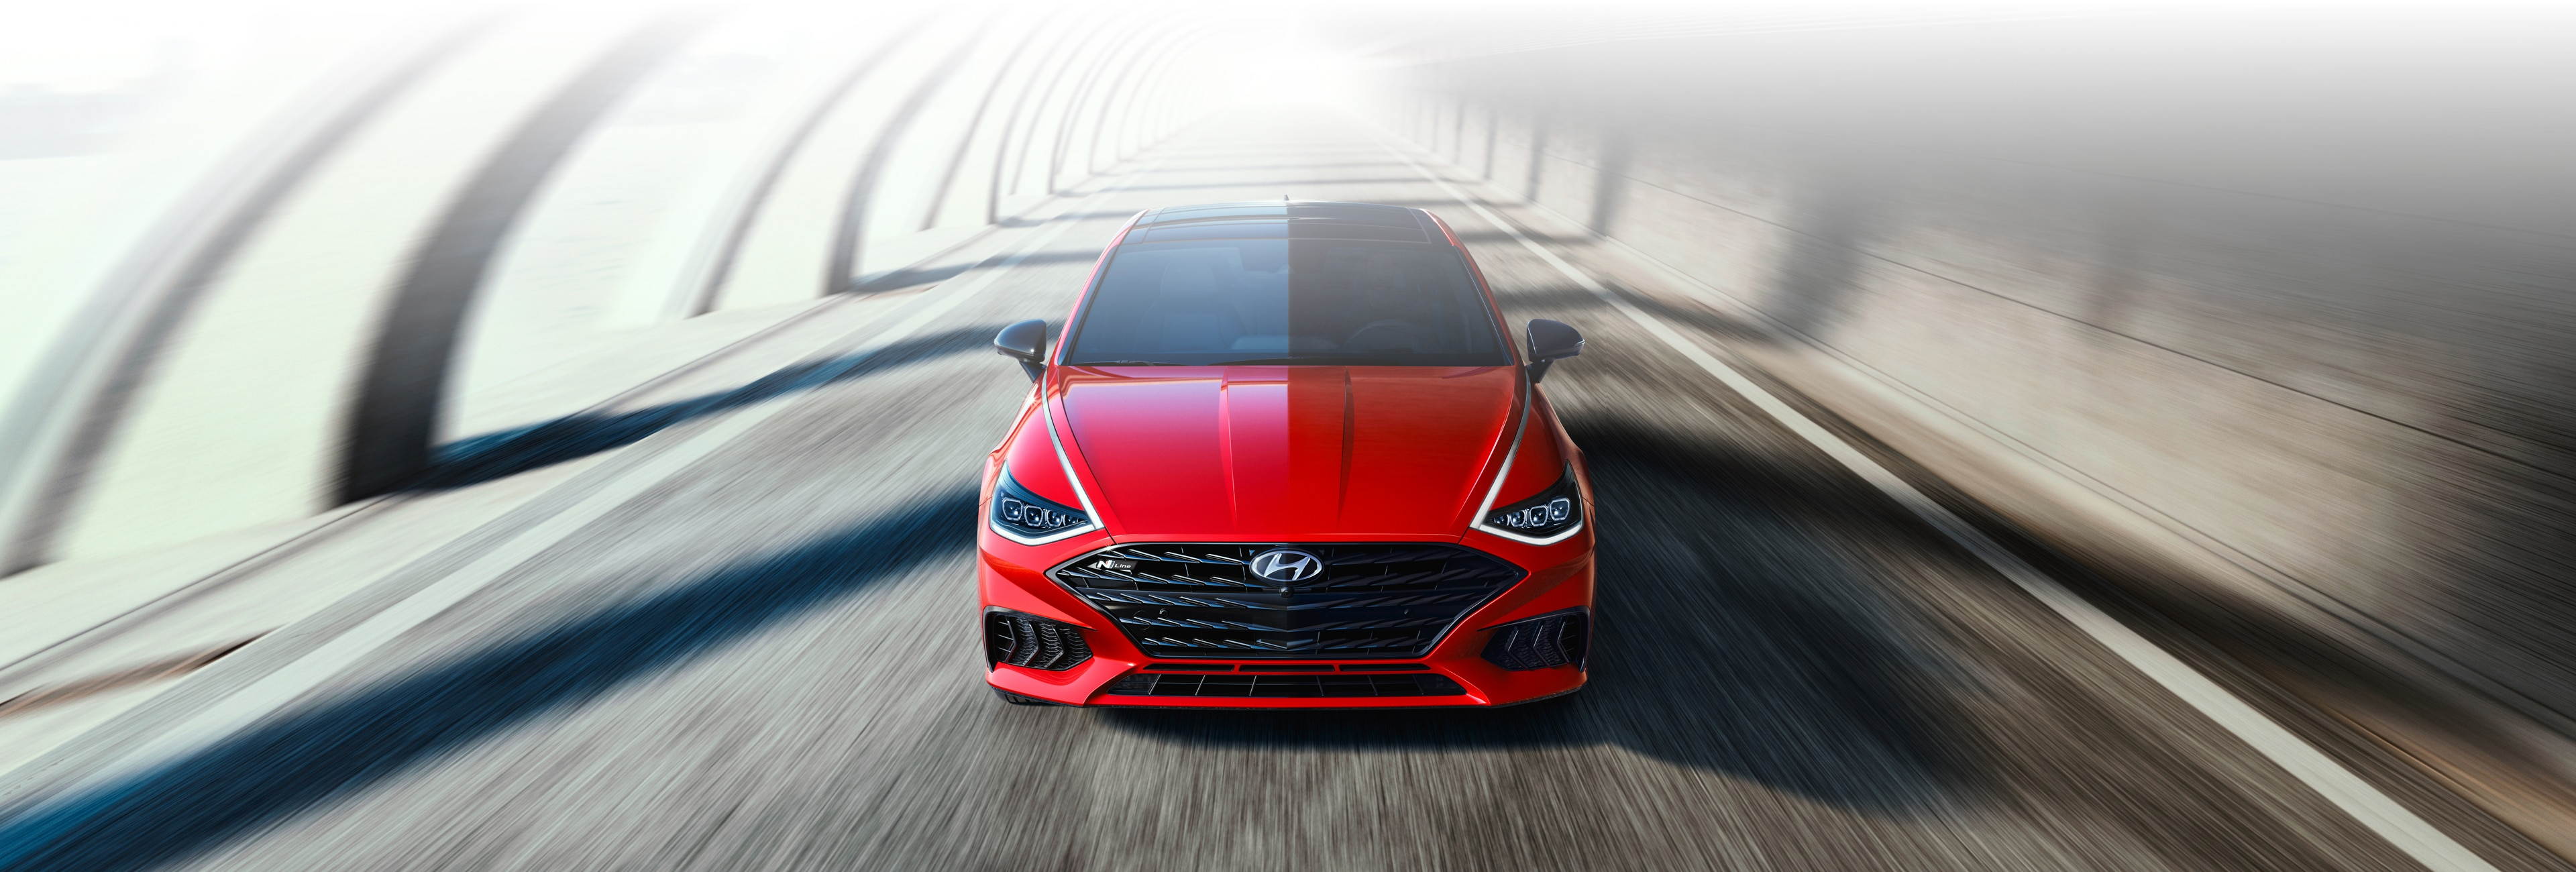 2021 Sonata N Line in red driving on the road